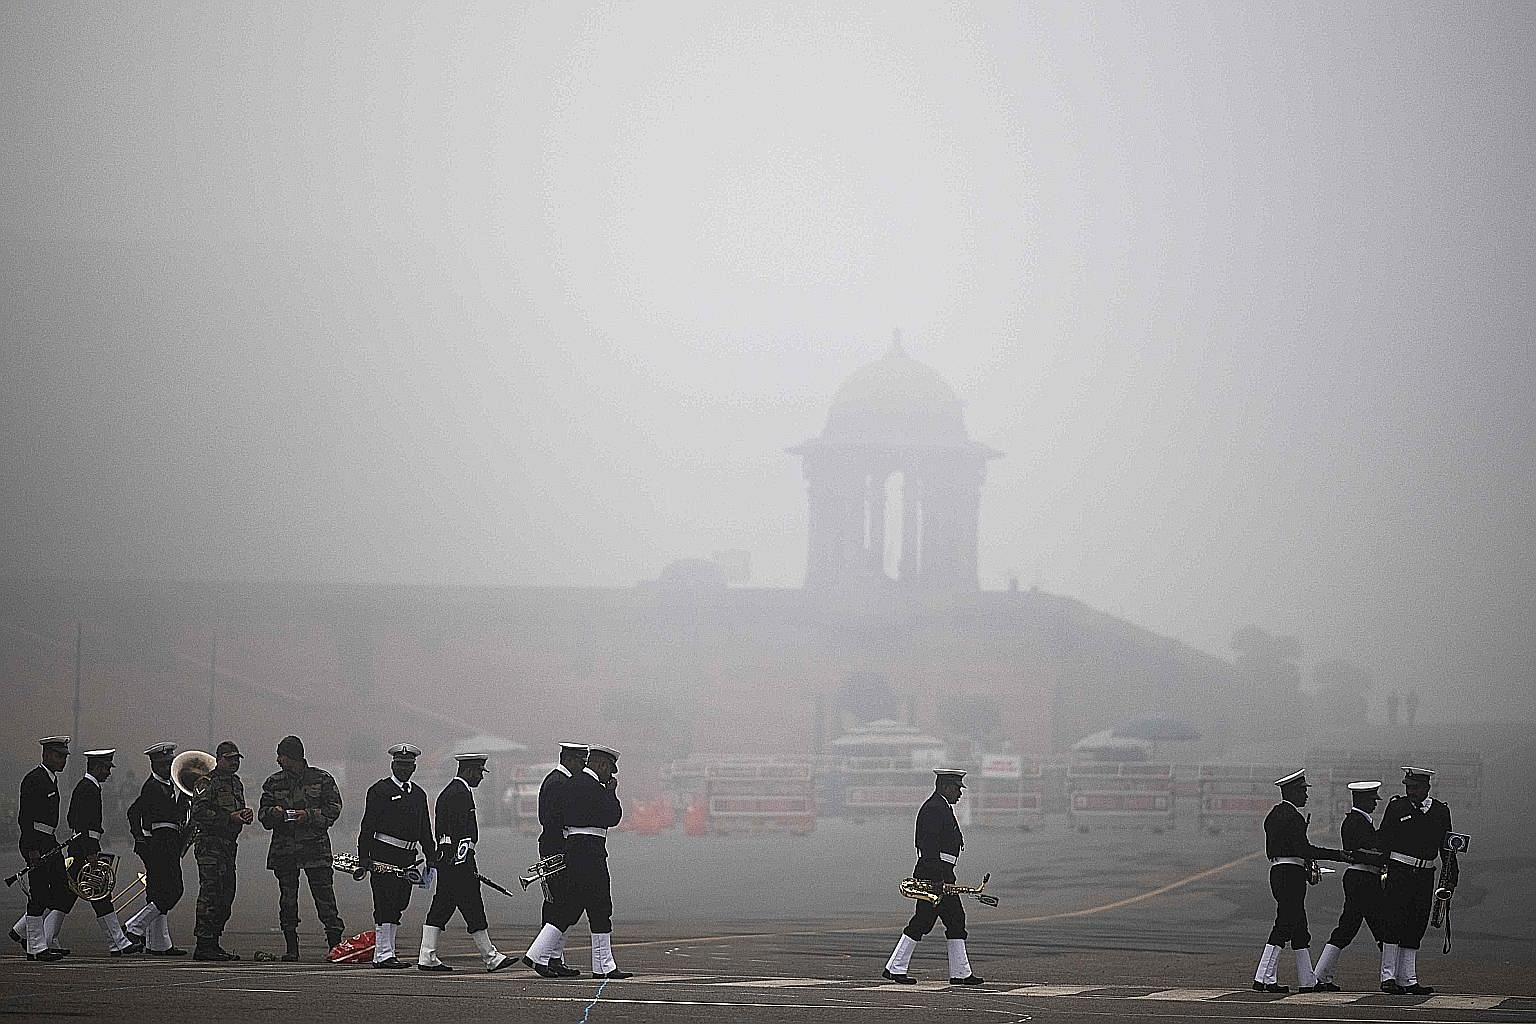 The navy band preparing to rehearse for the Republic Day Parade near the Presidential Palace in smog-covered Delhi yesterday.